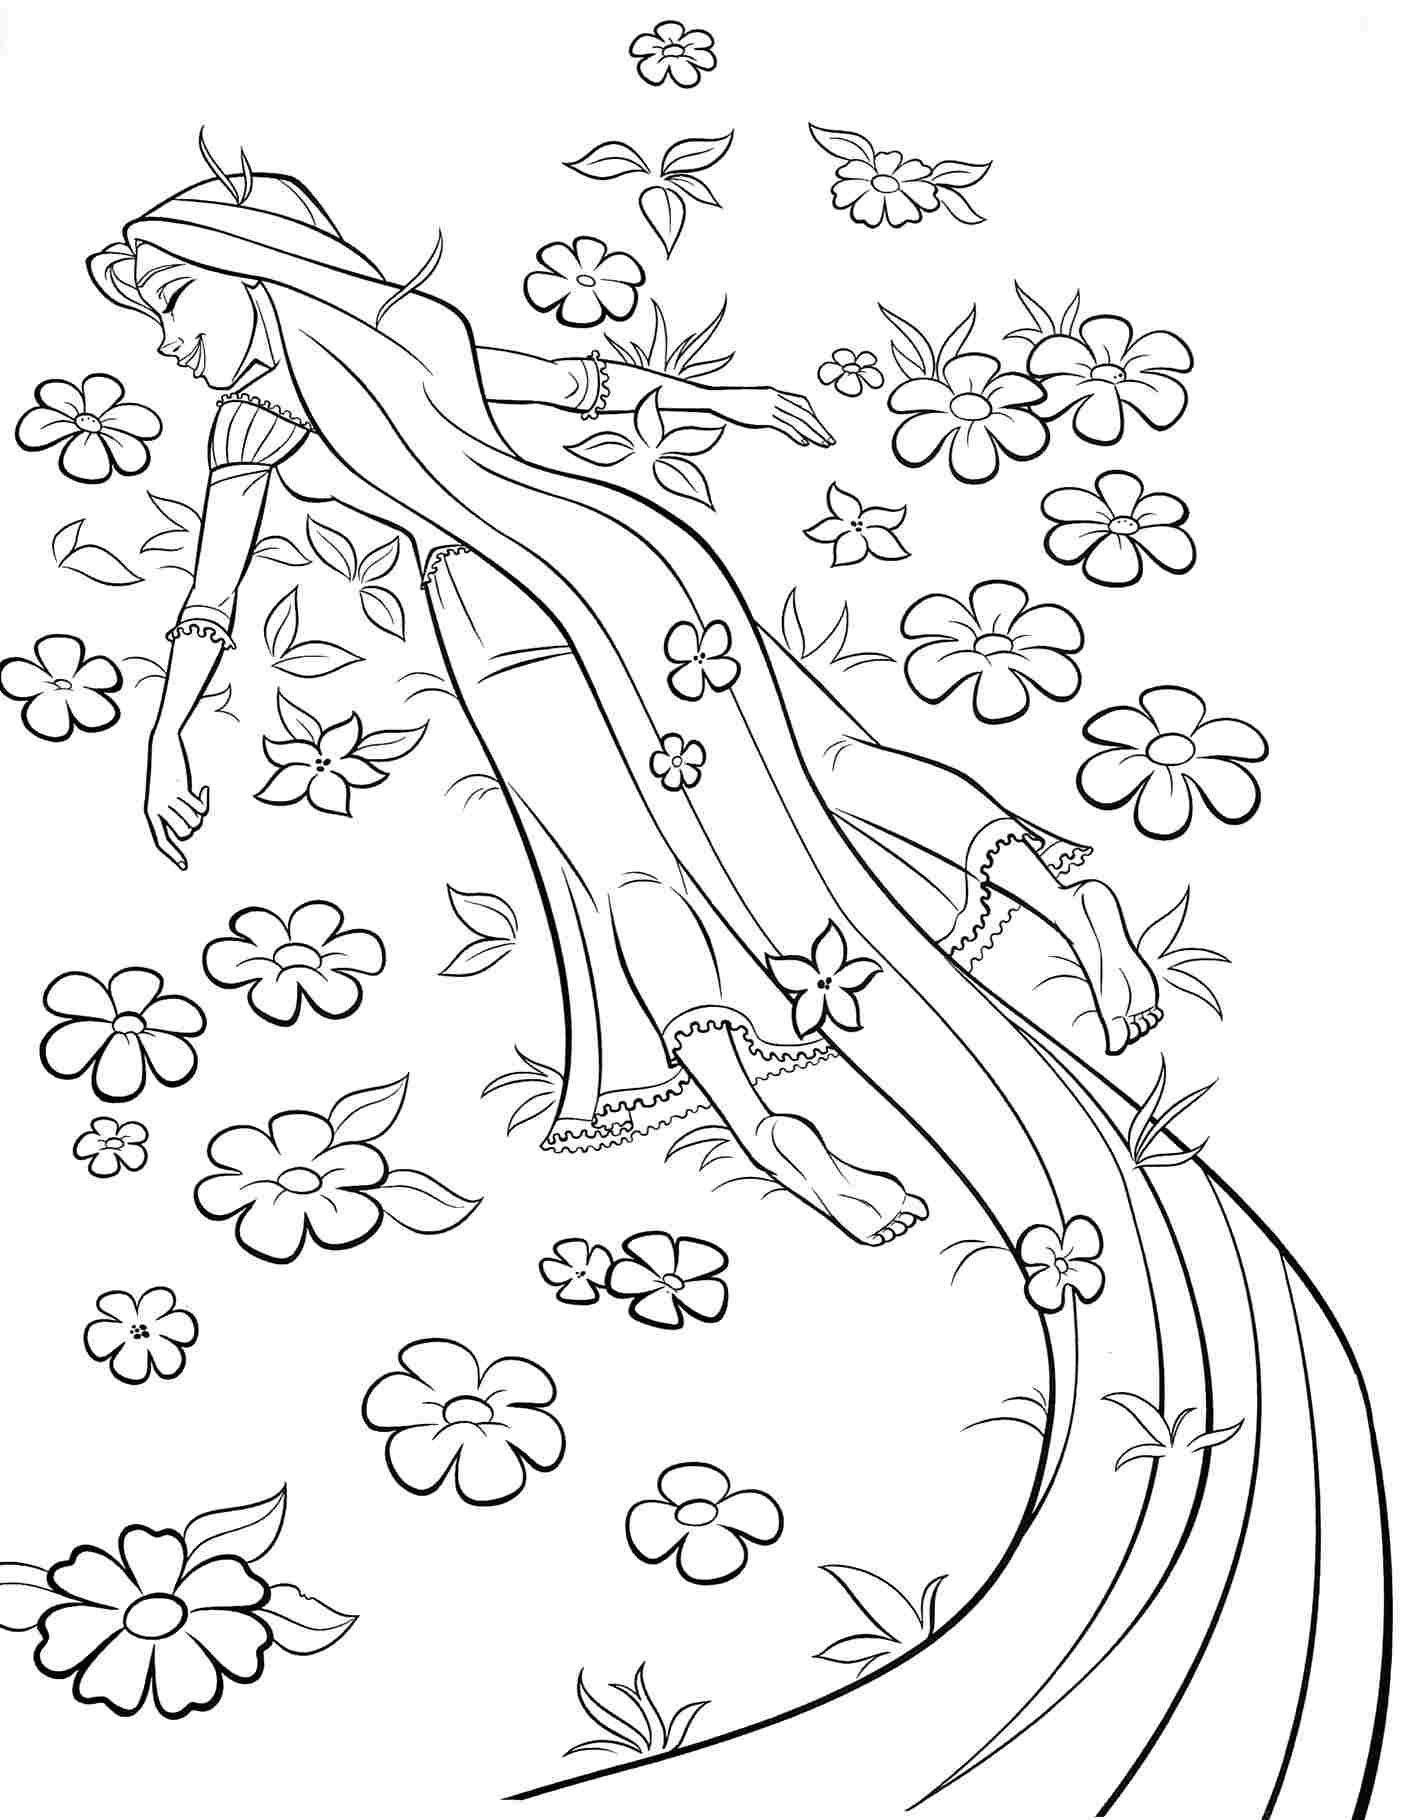 disney tangled coloring pages printable disney princess rapunzel colouring pages free for boys girls - Tangled Coloring Pages Girls